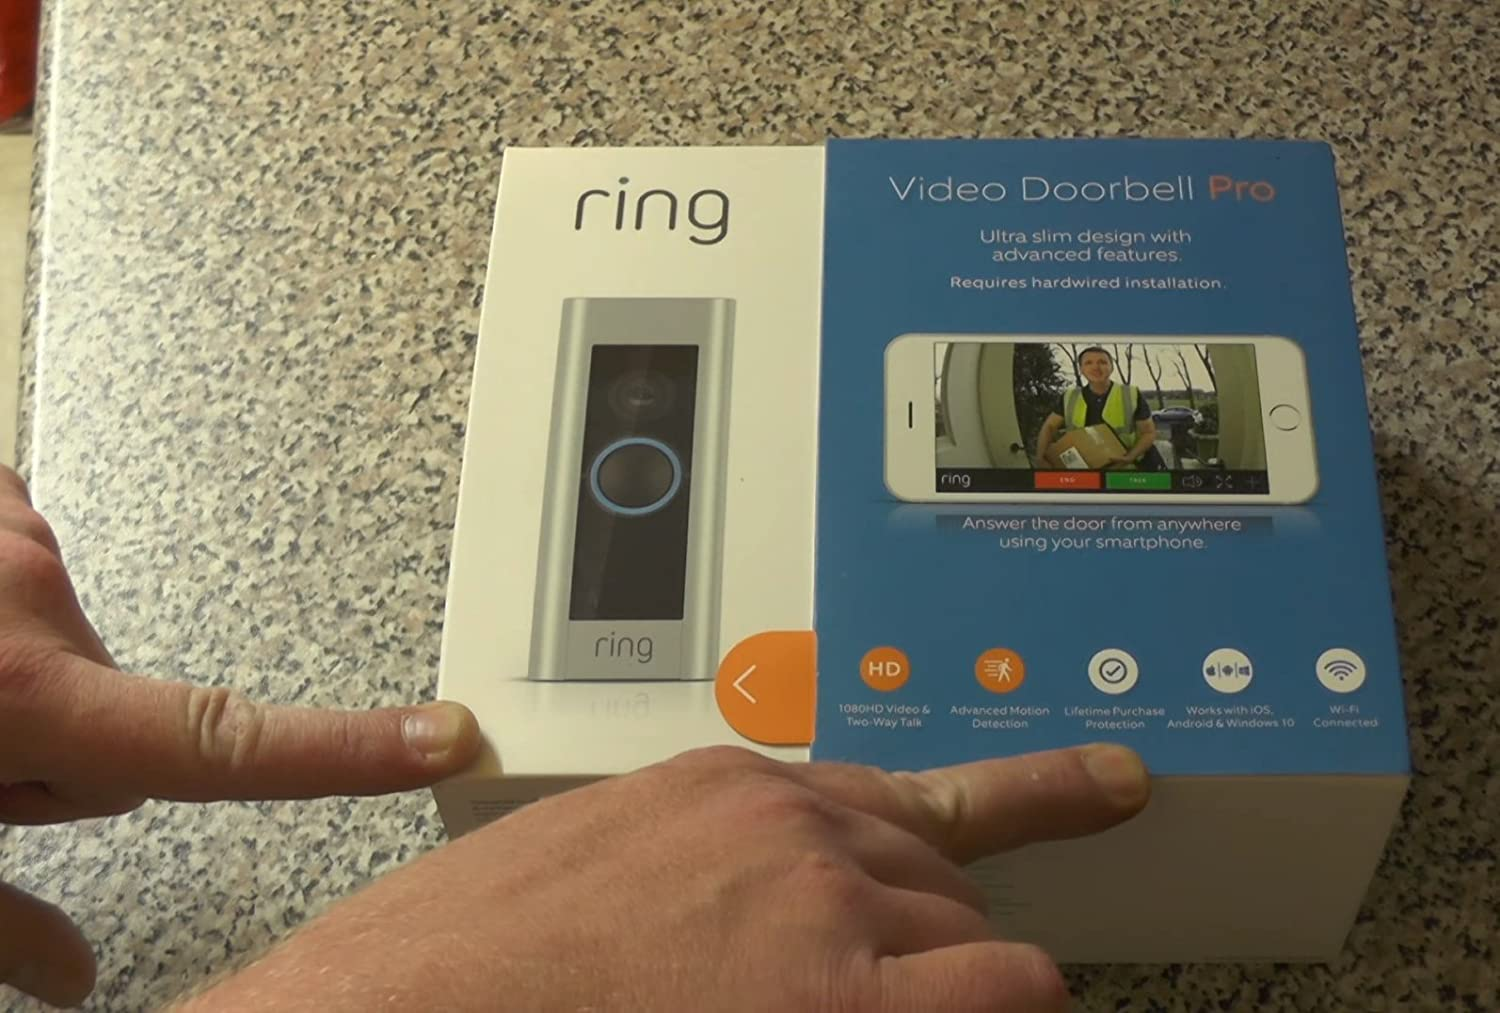 Amazon.com: Ring 8VR1P6-0EN0 Pro Video Doorbell, Wi-Fi Connected - Quantity 4: Home & Kitchen